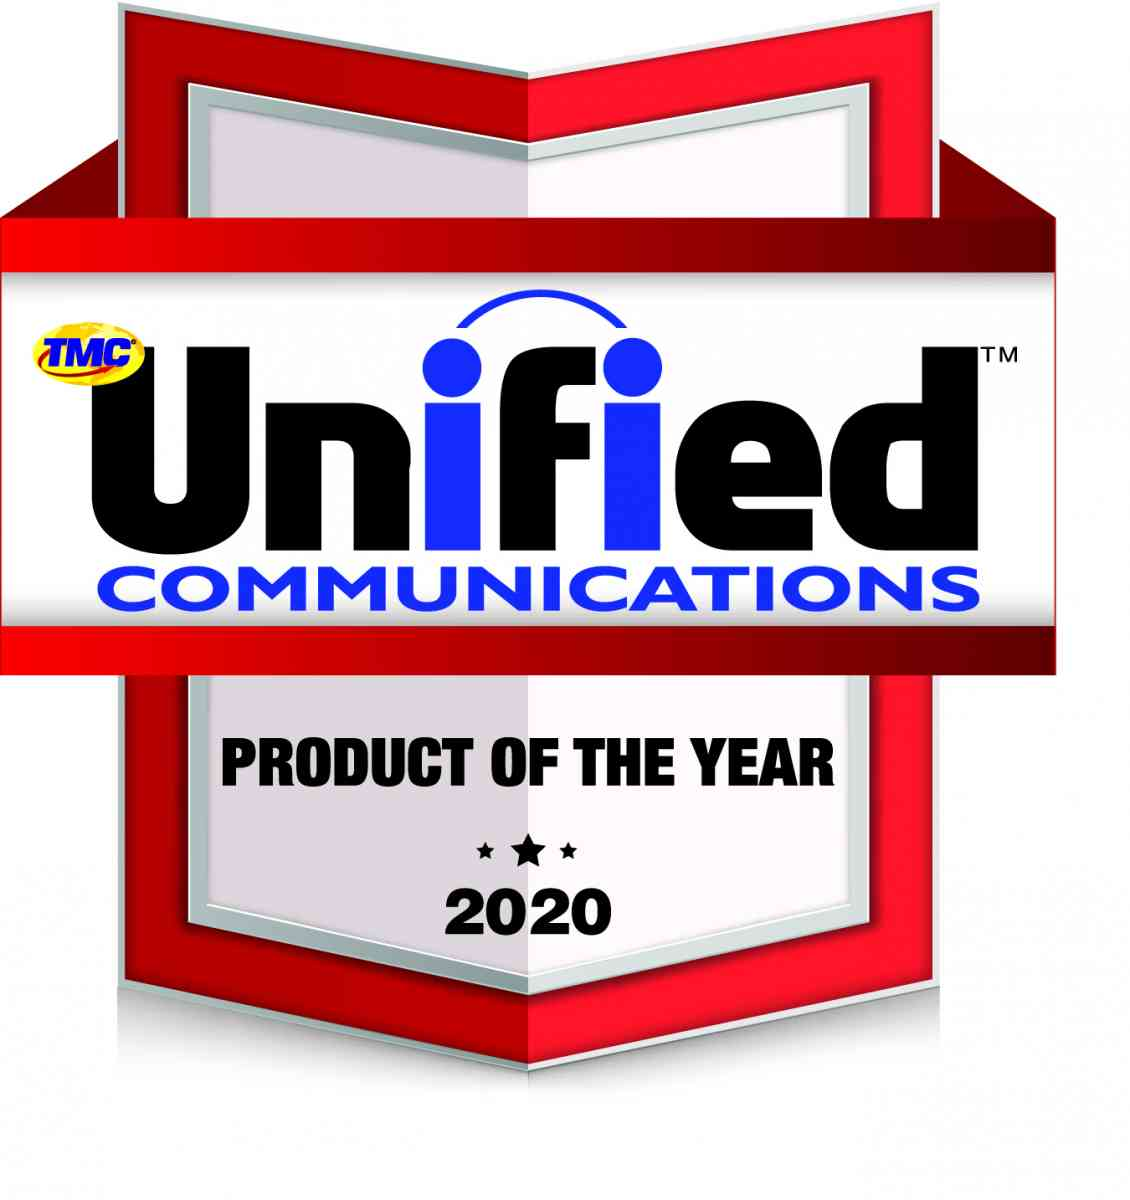 Grandstream Receives 2020 Unified Communications Product of the Year Award